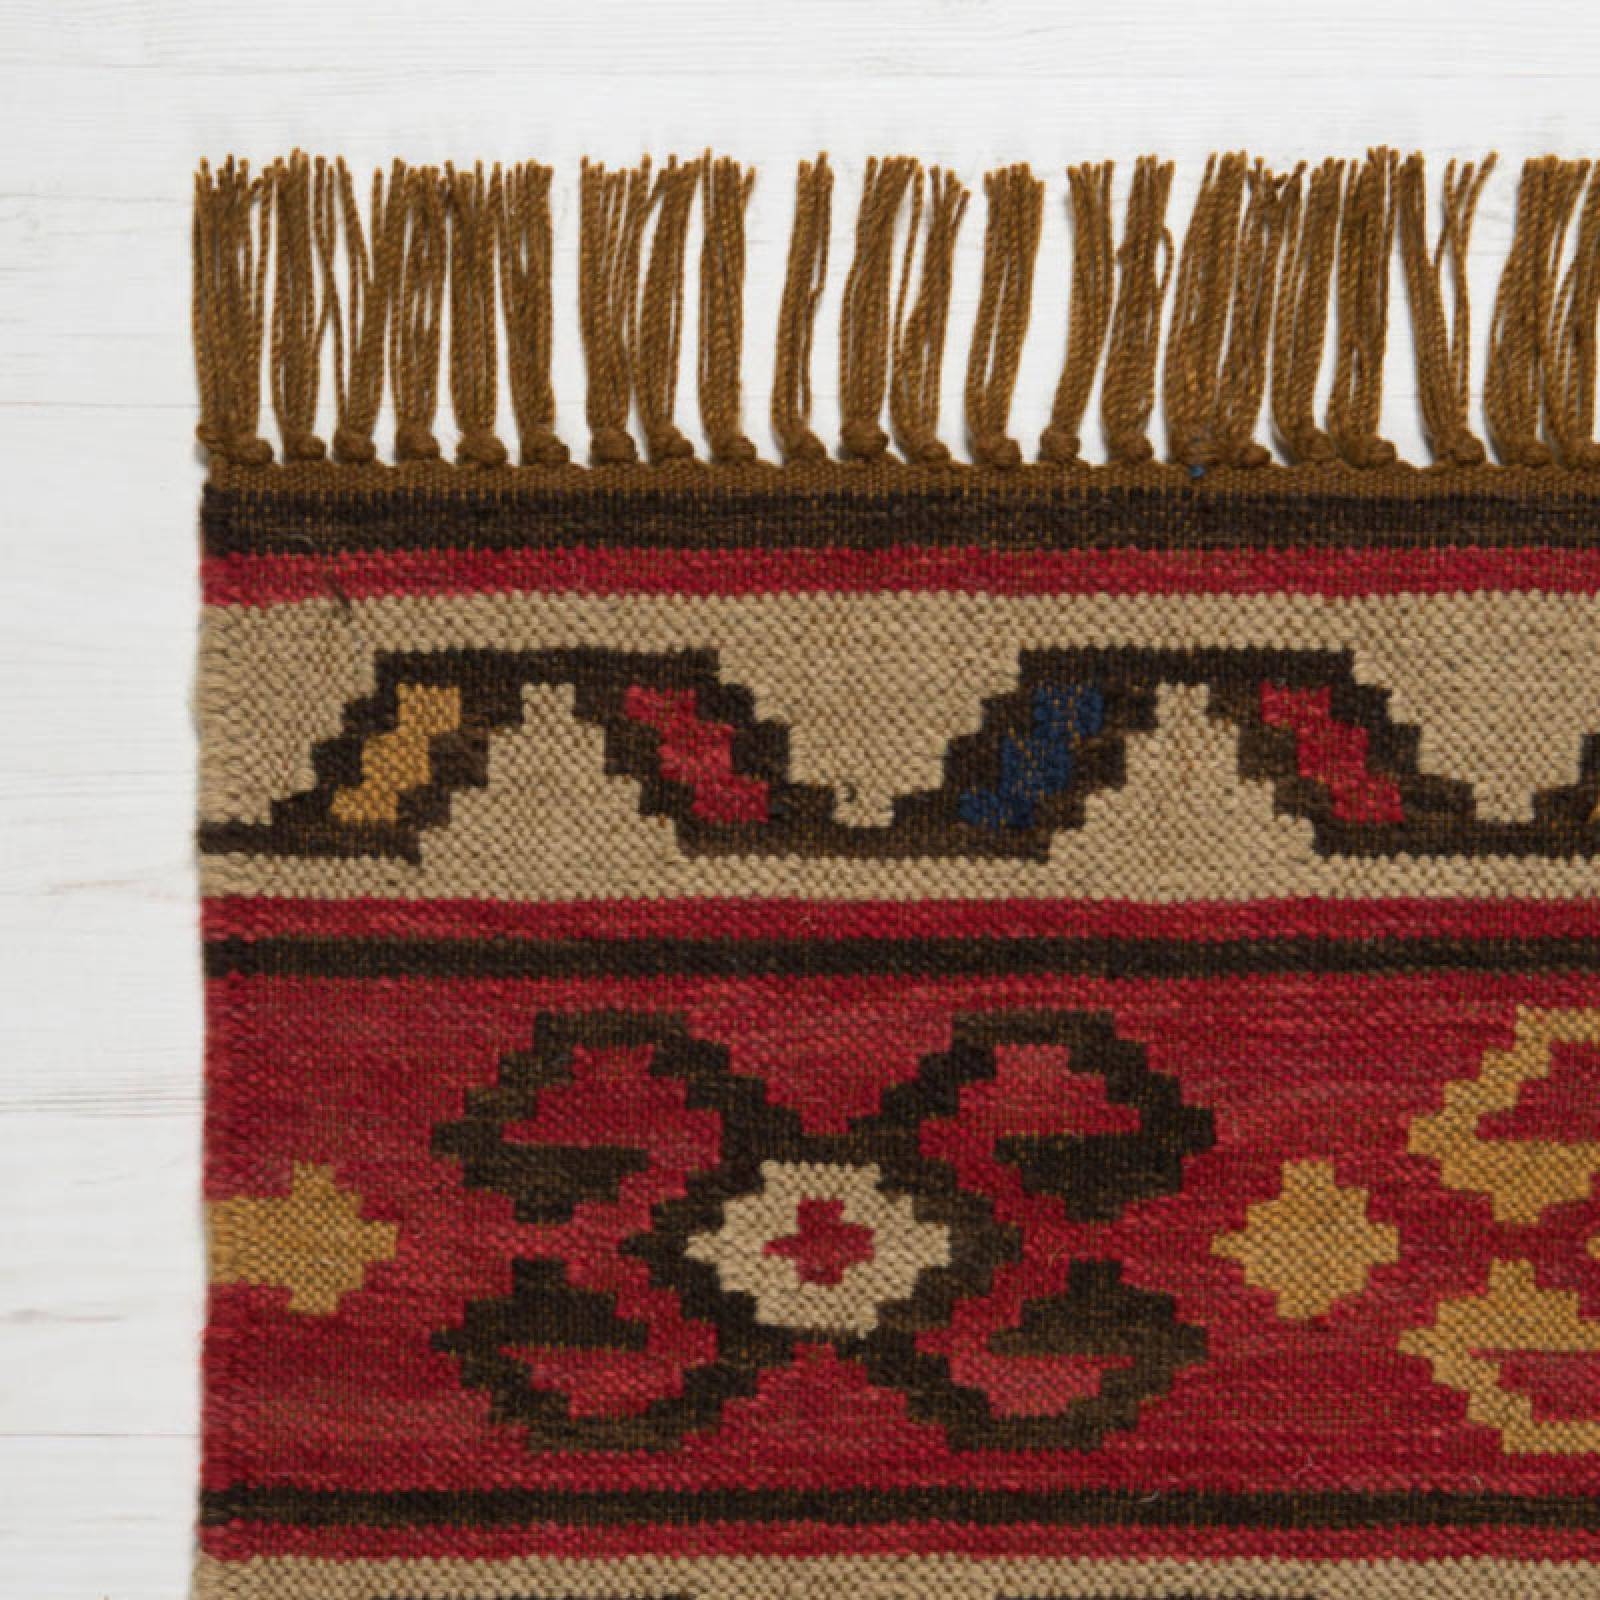 DISPLAY Nomad TAURUS 240x170cm Recycled Bottle Rug thumbnails